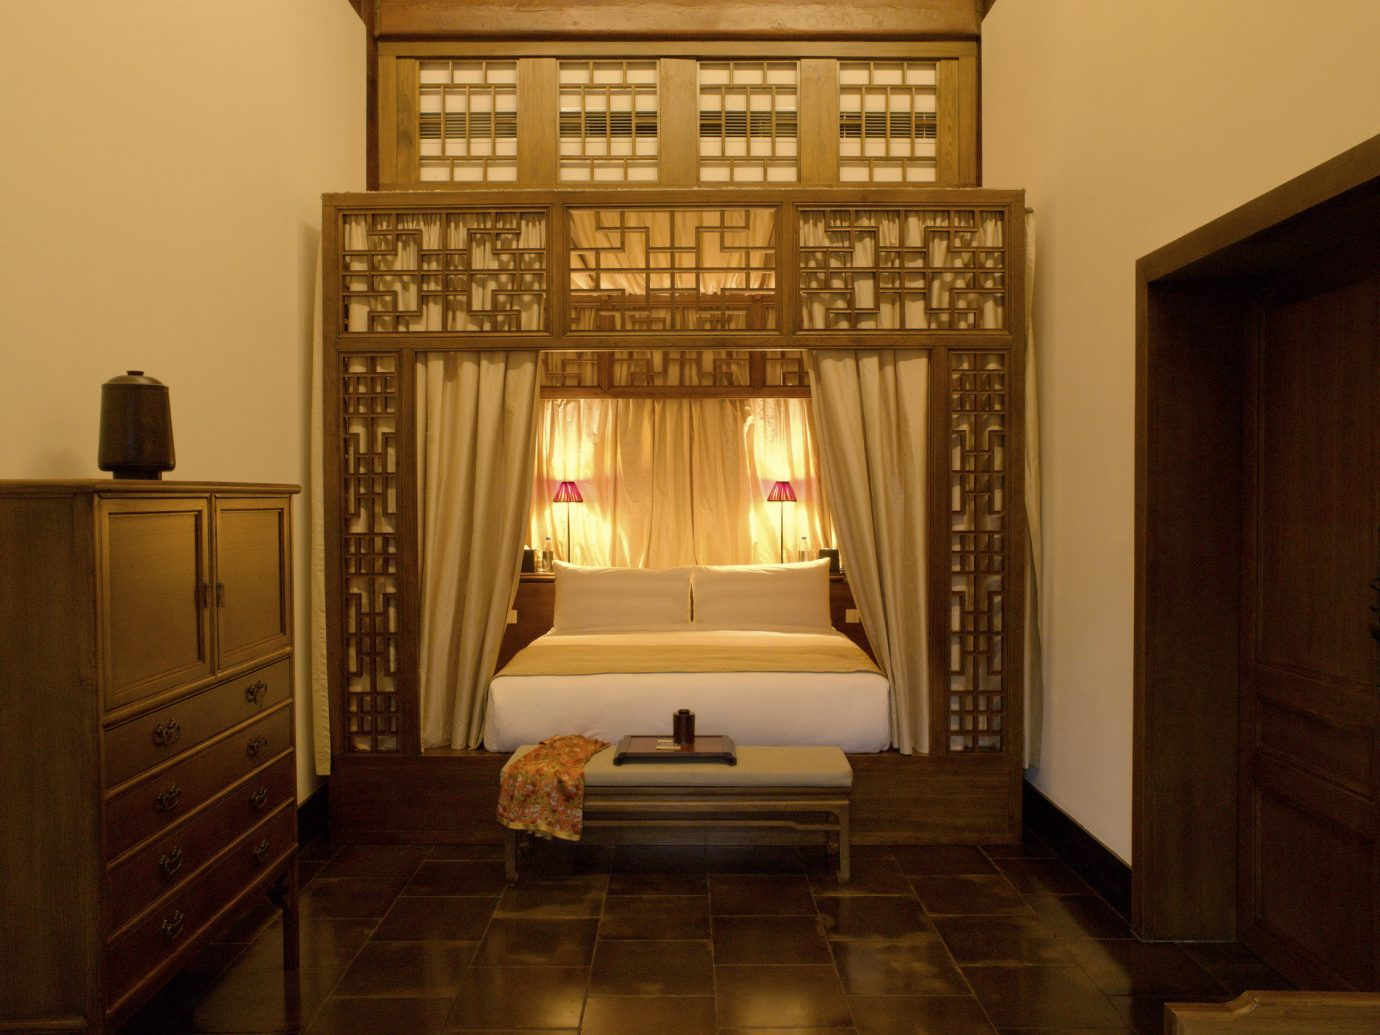 Bedroom at Aman Summer Palace in Beijing